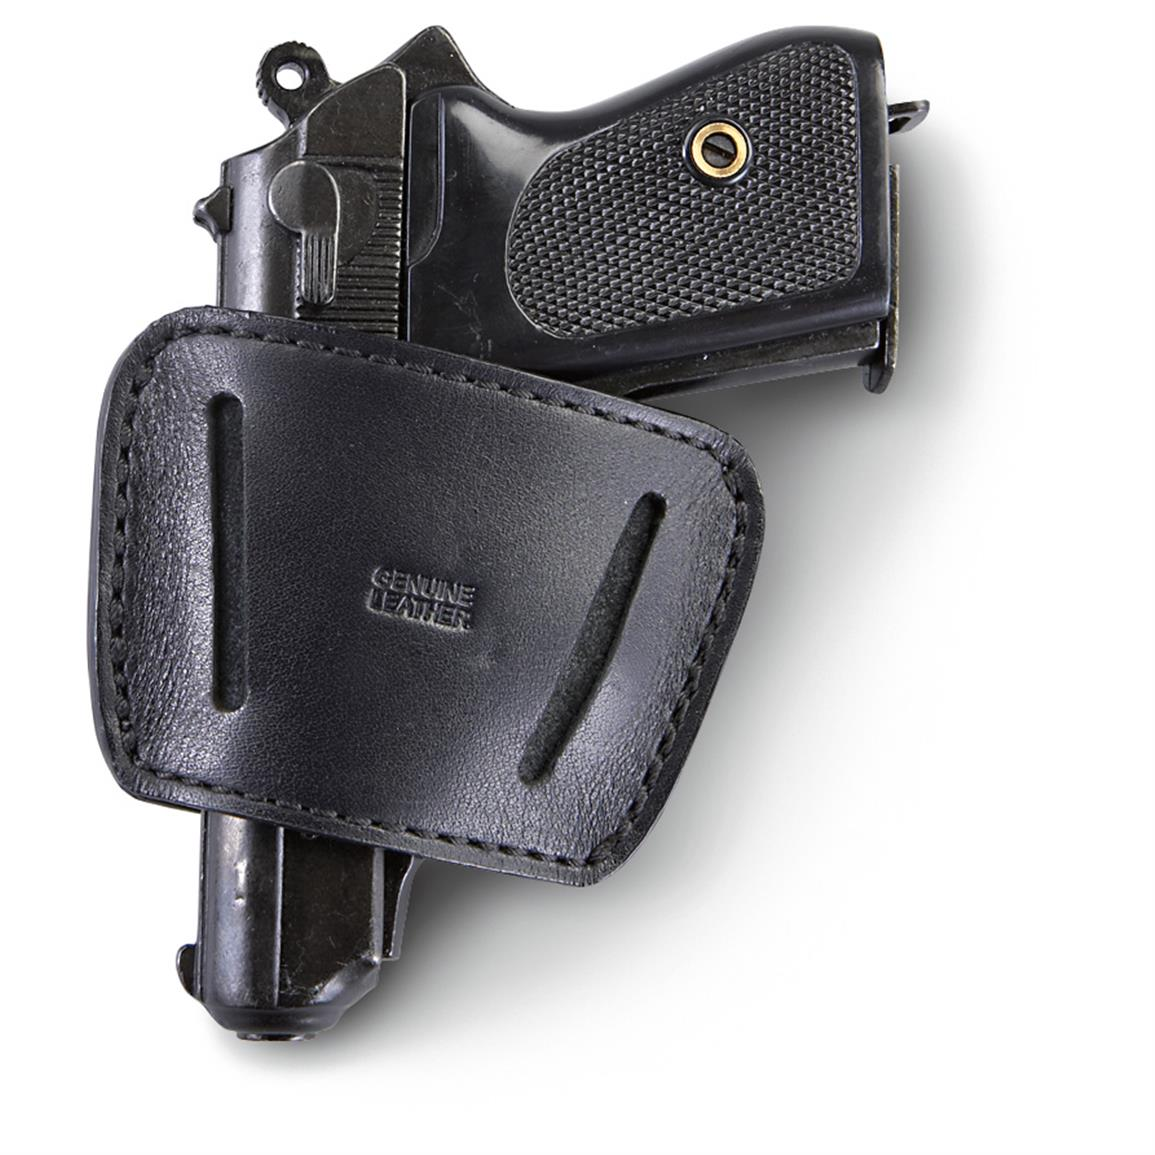 Homeland Conceal Small Belt Slide Holster, Black